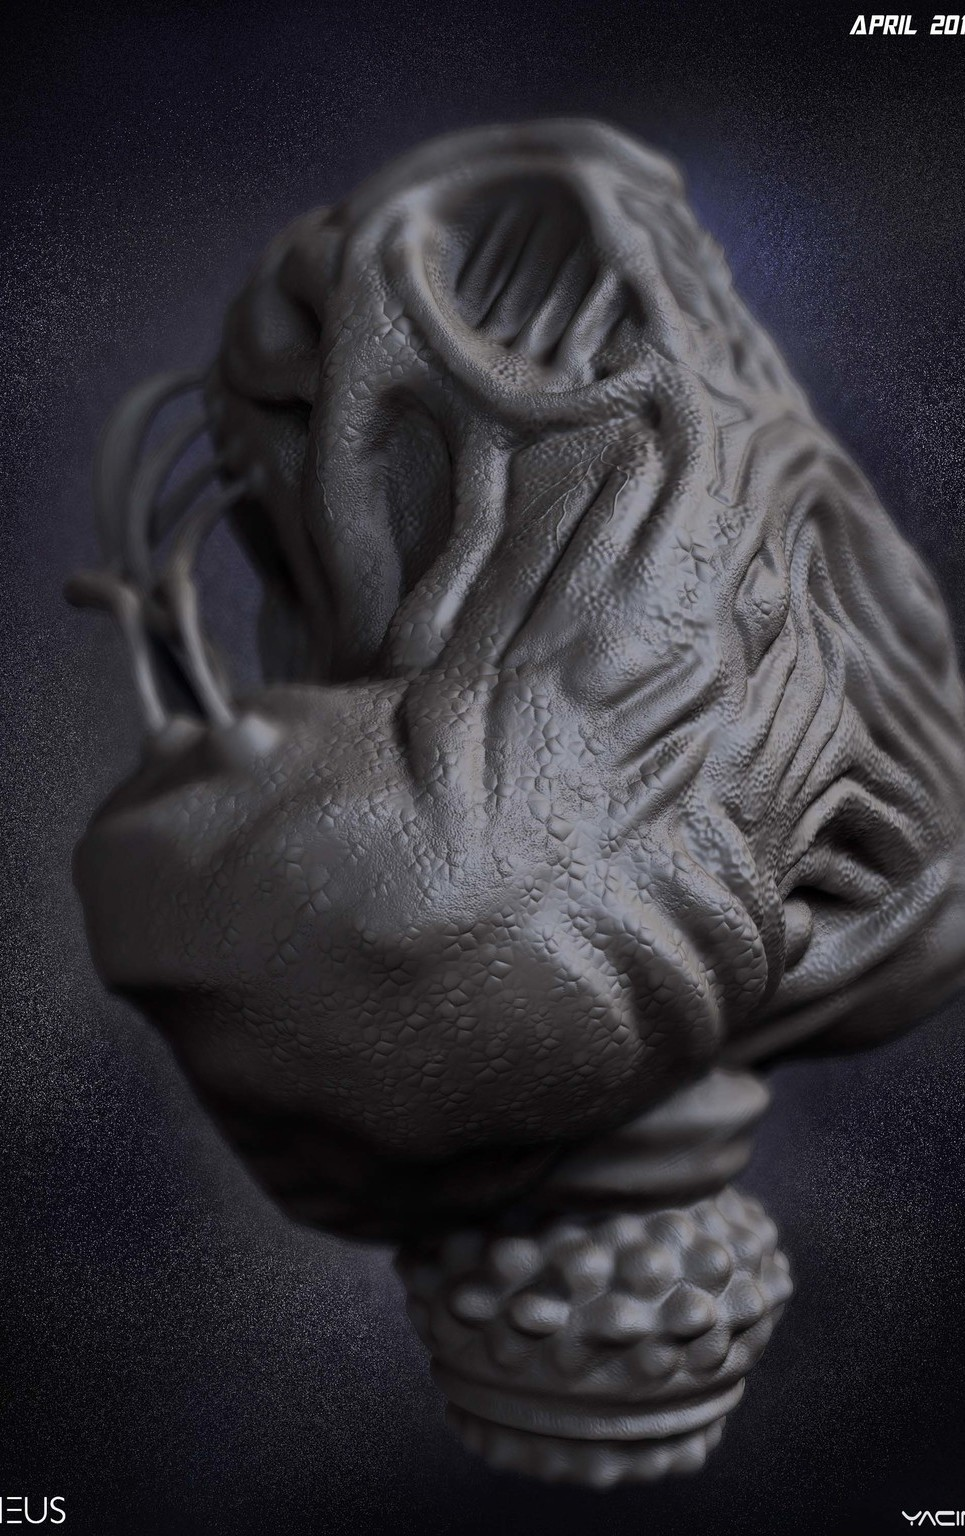 02 render high poly alien prometheus by yacine brinis show